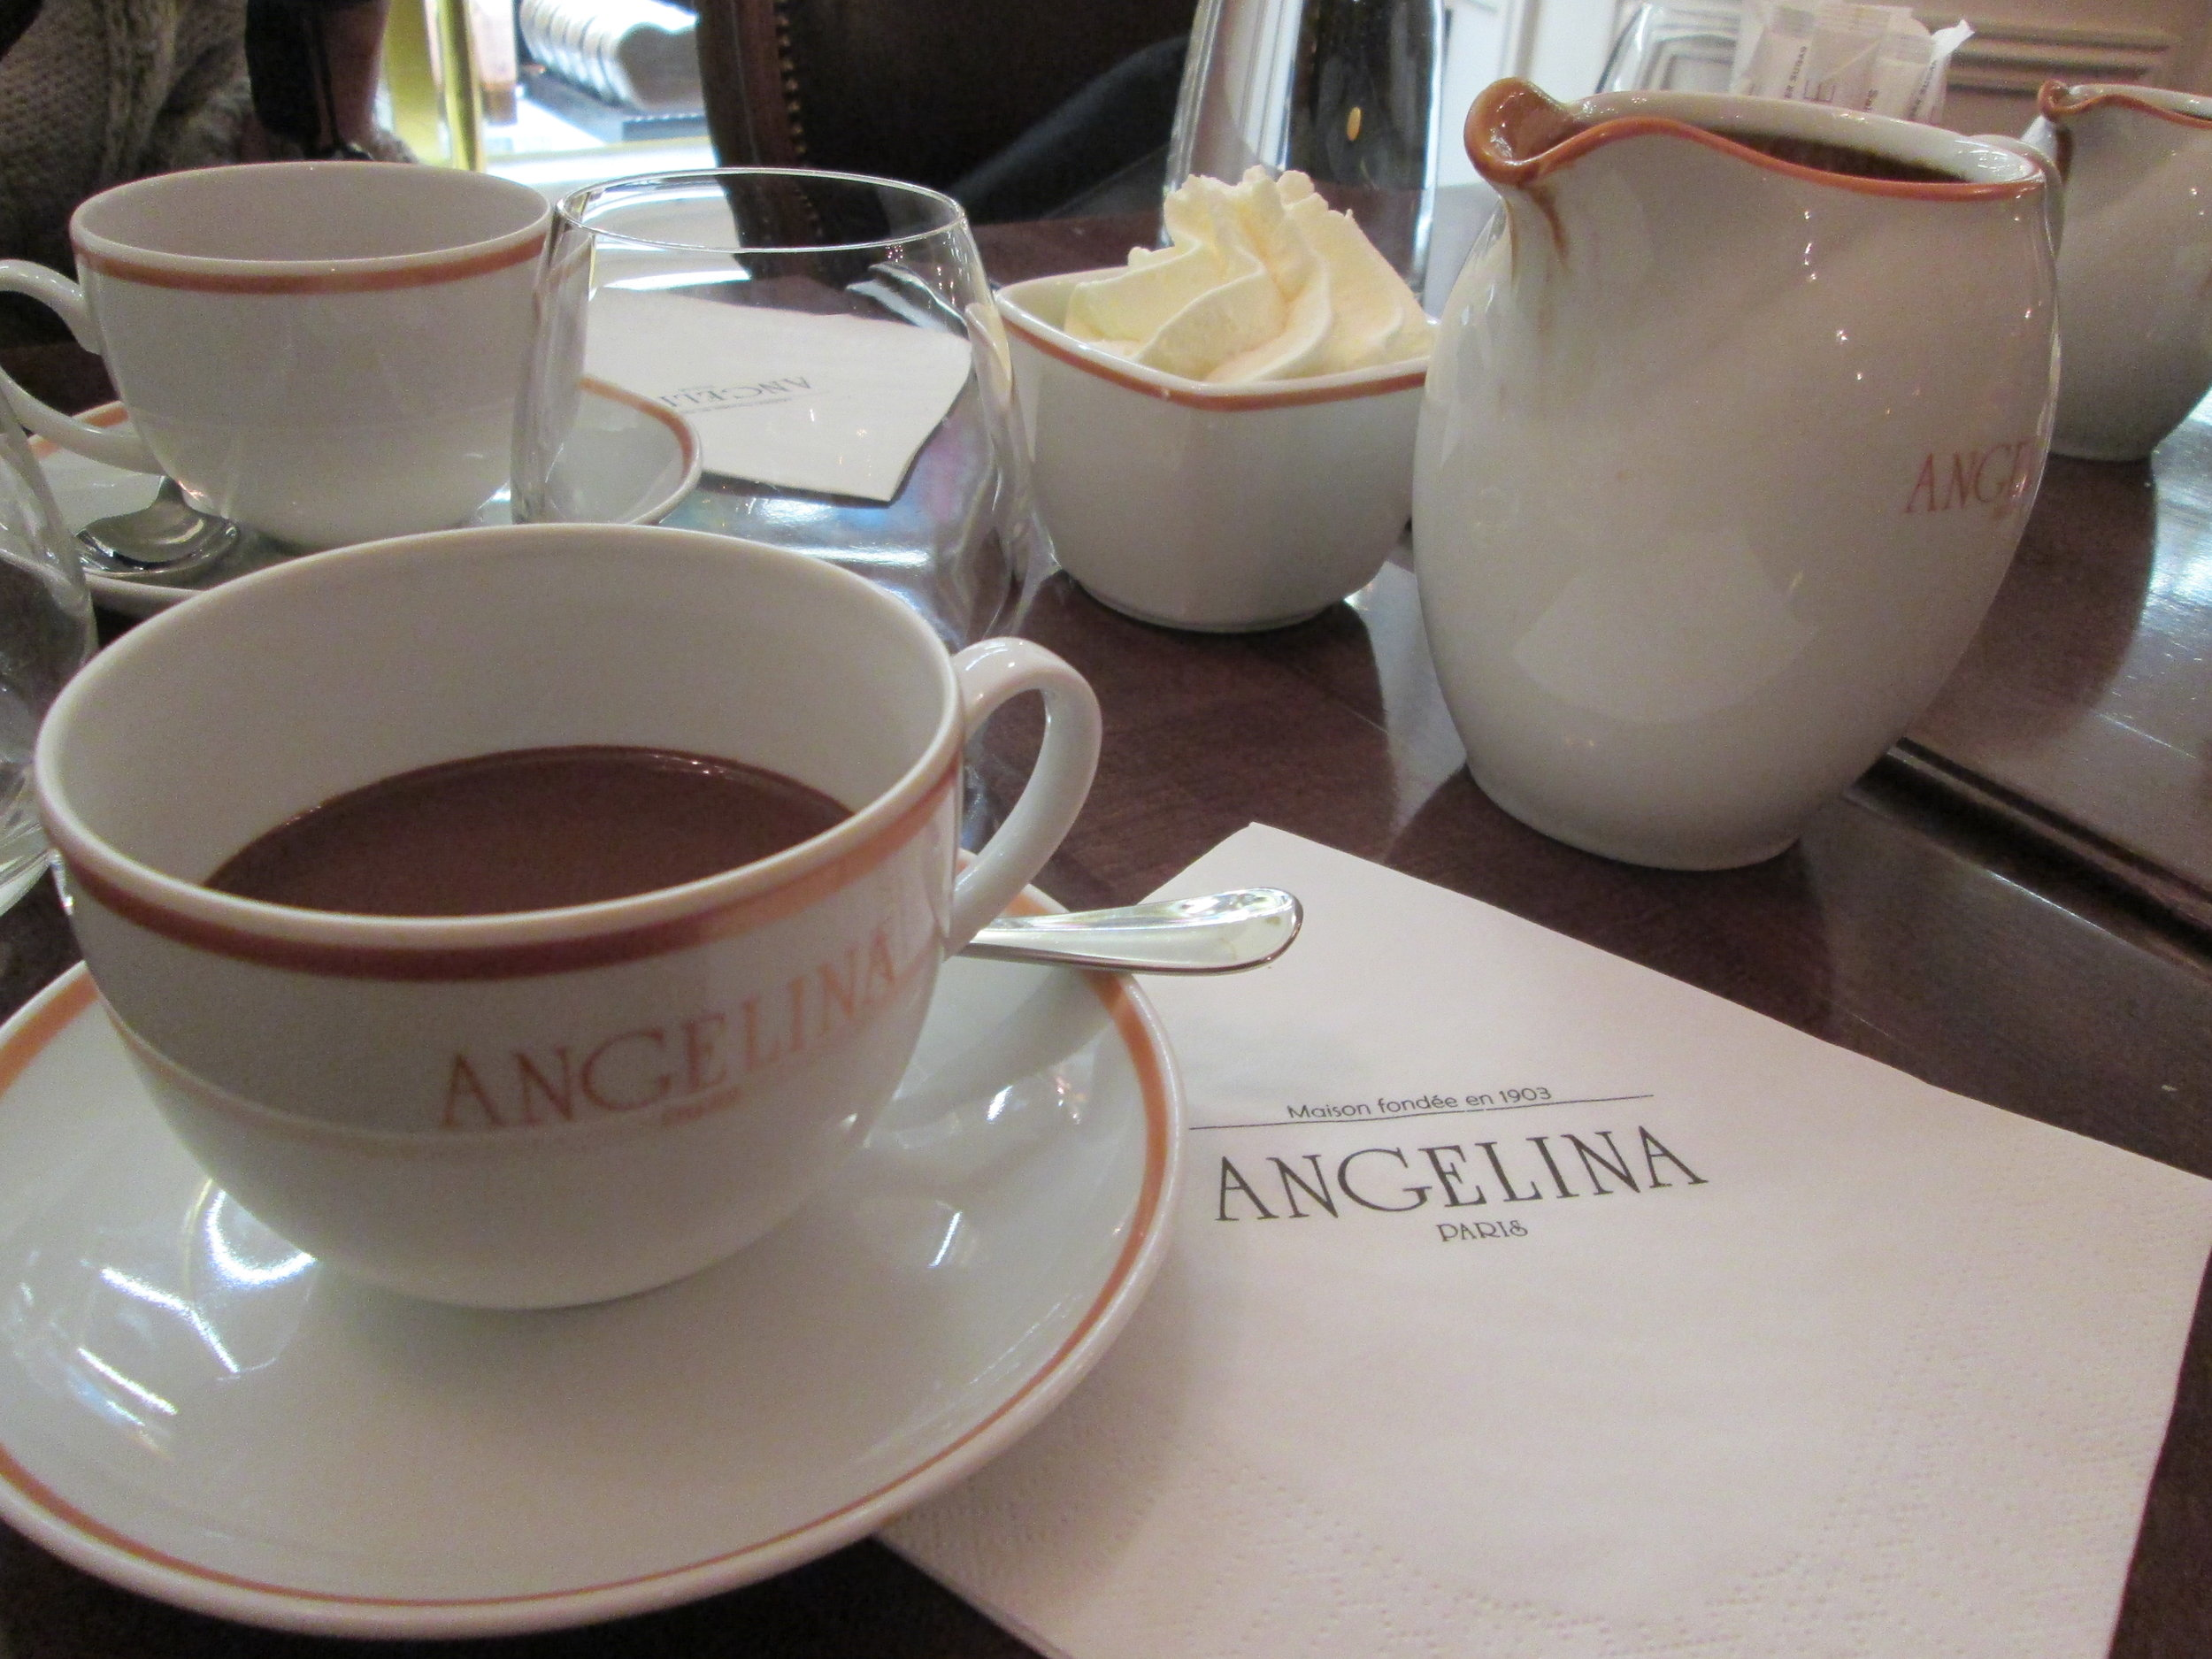 Otherworldly hot chocolate at Angelina's in Galleries Lafayette. Note the mountain of cream.